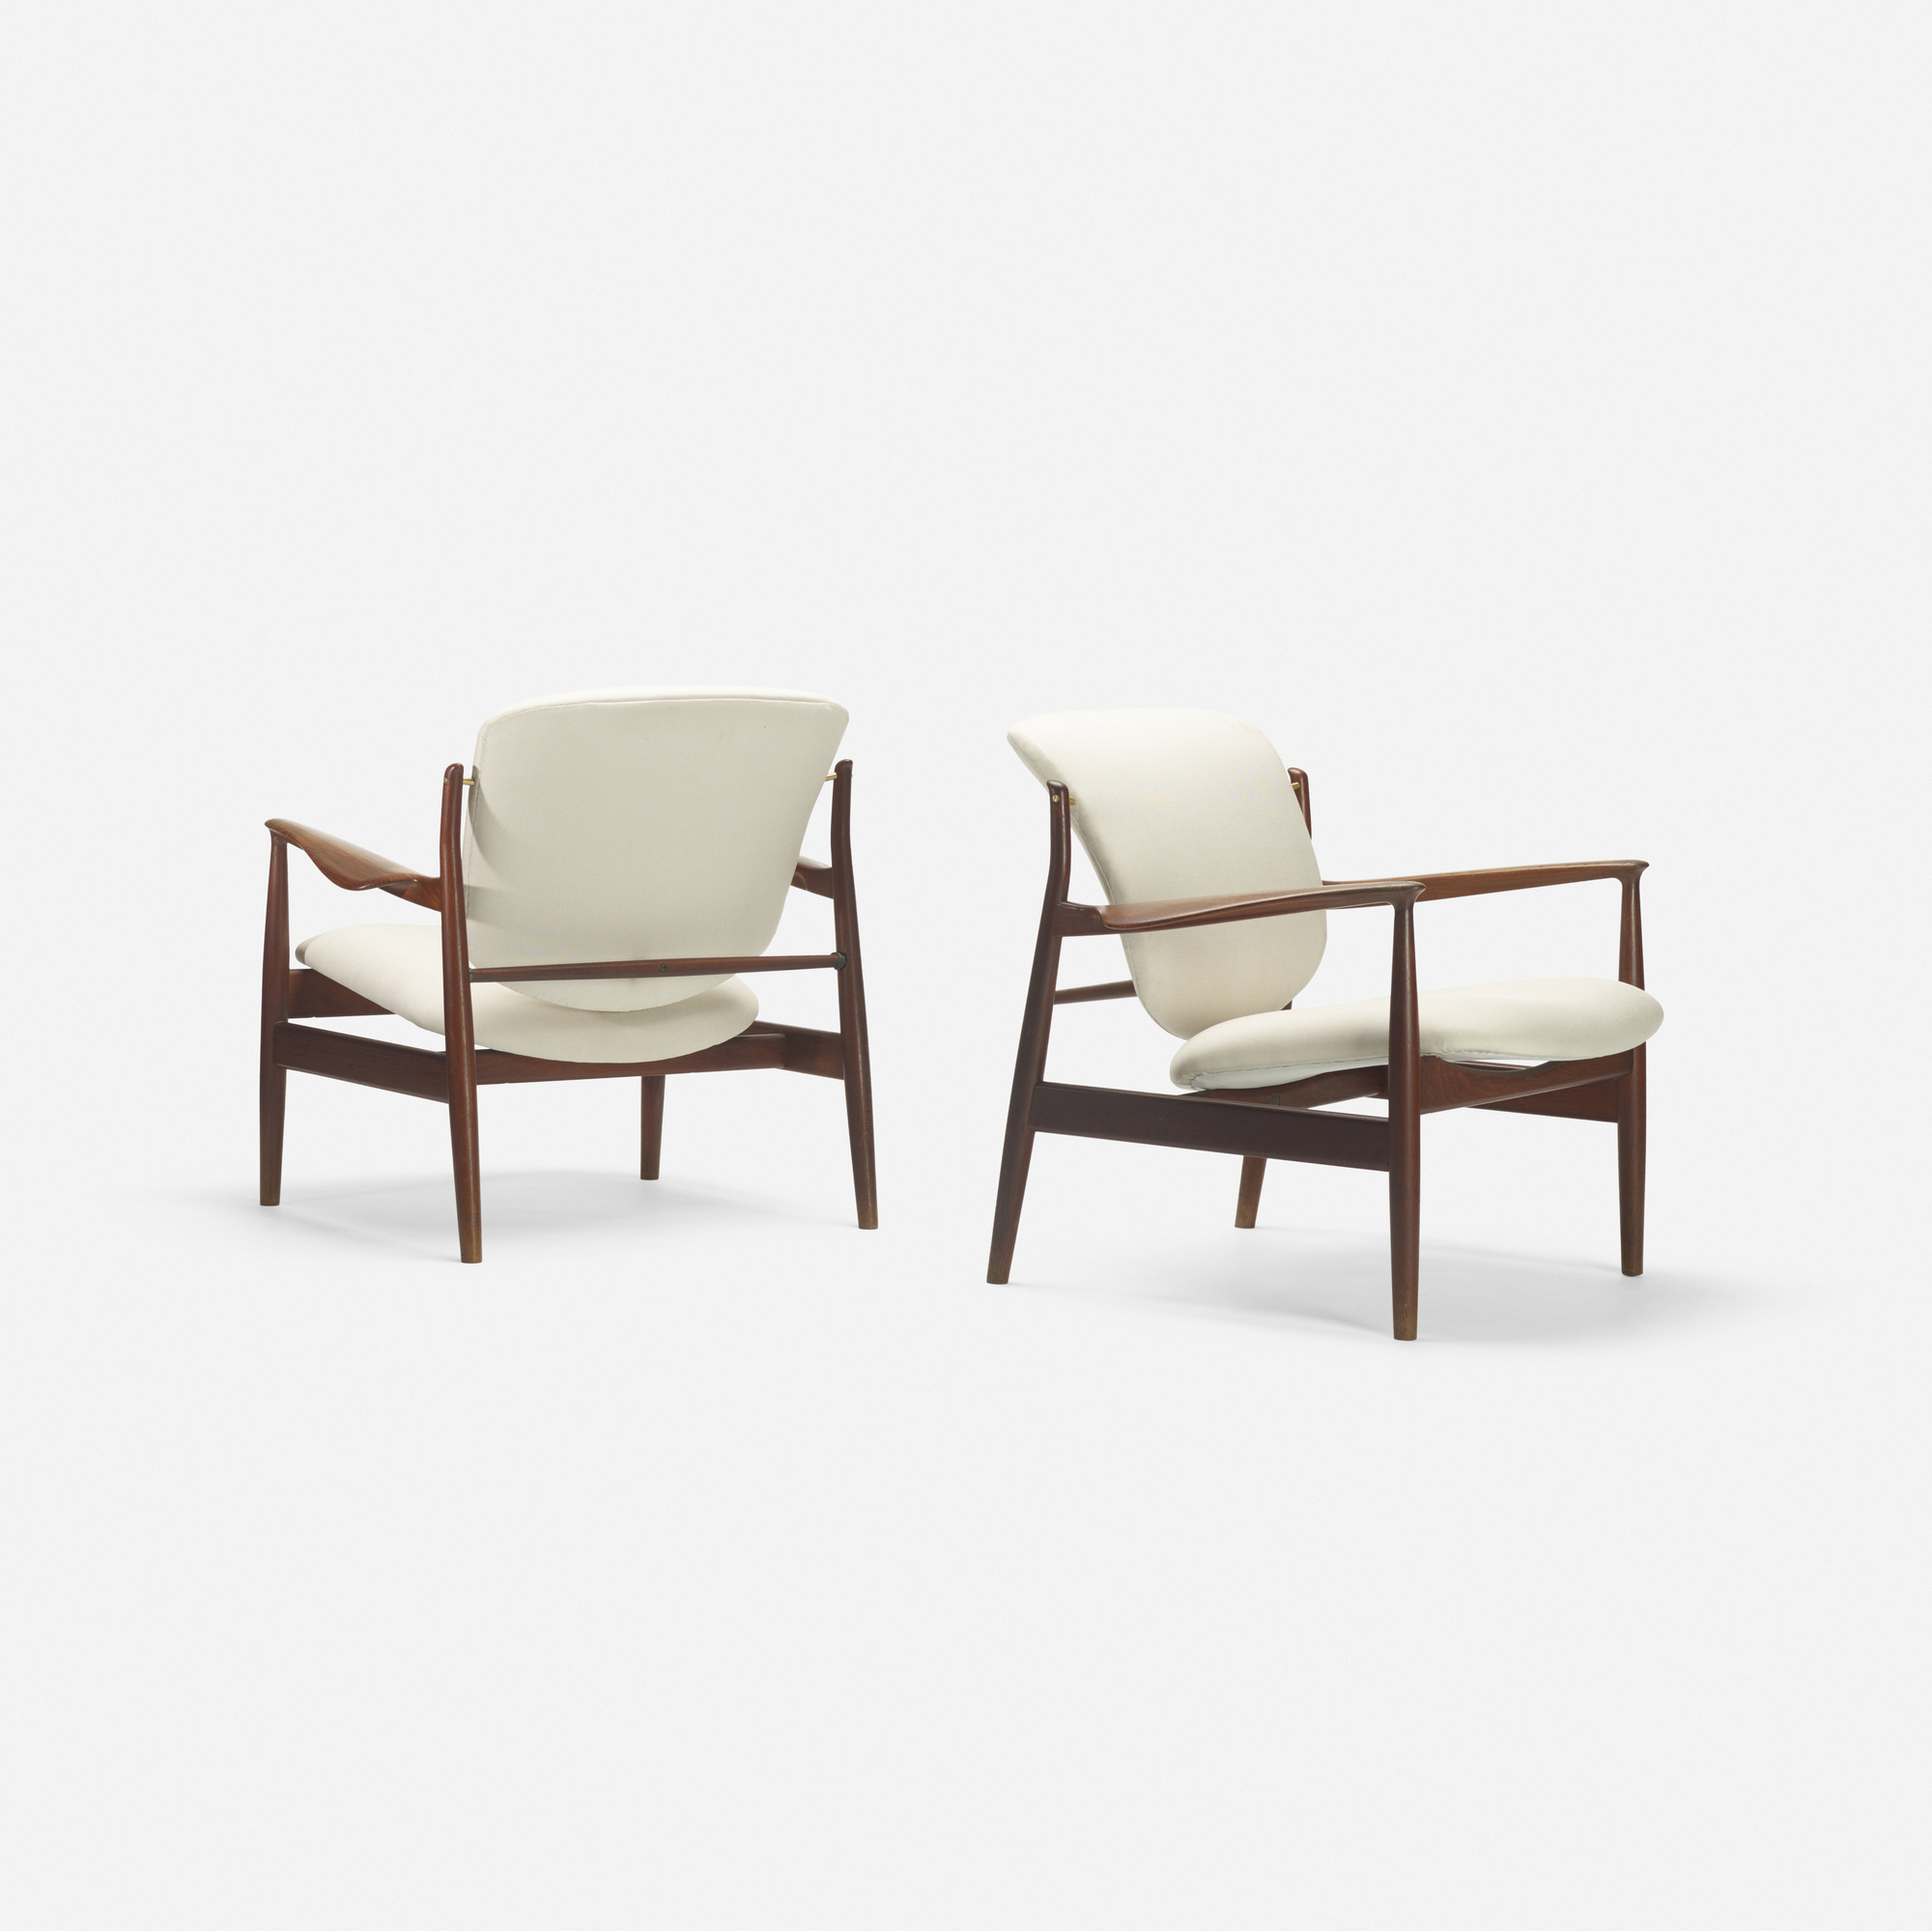 162: Finn Juhl / lounge chairs, pair (2 of 2)